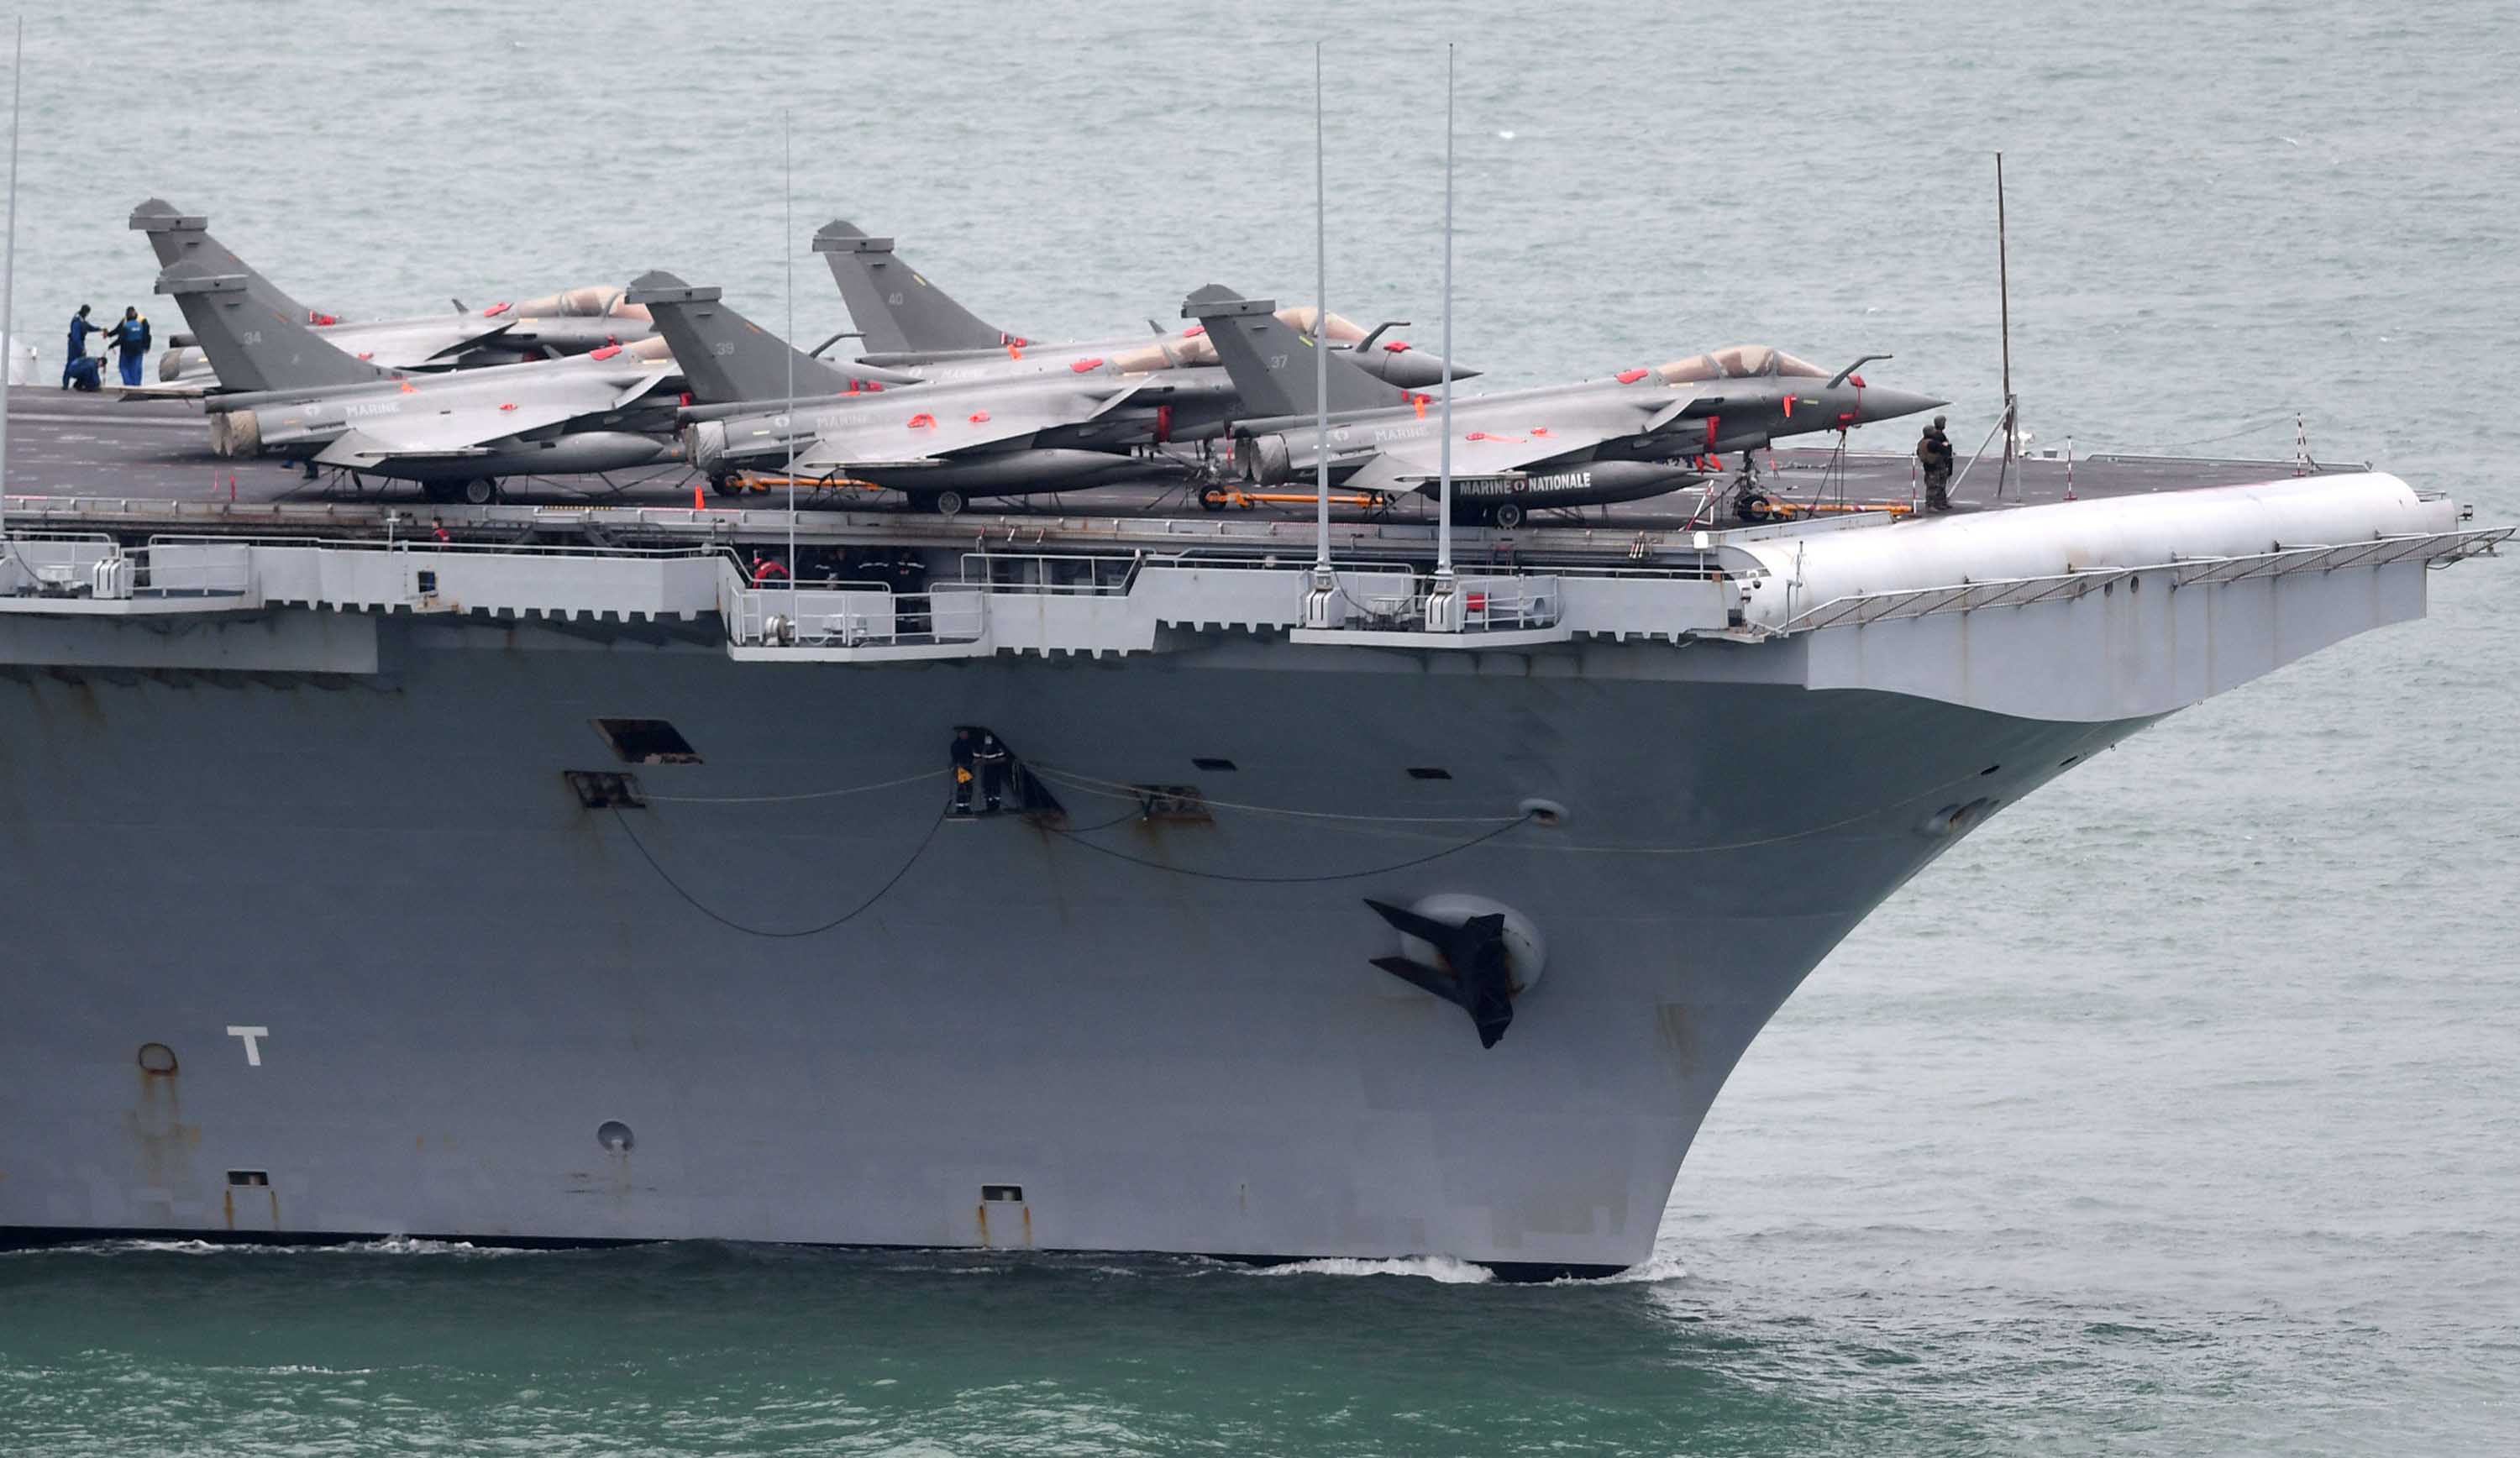 The French aircraft carrier Charles de Gaulle enters the port of Brest, France on March 13.